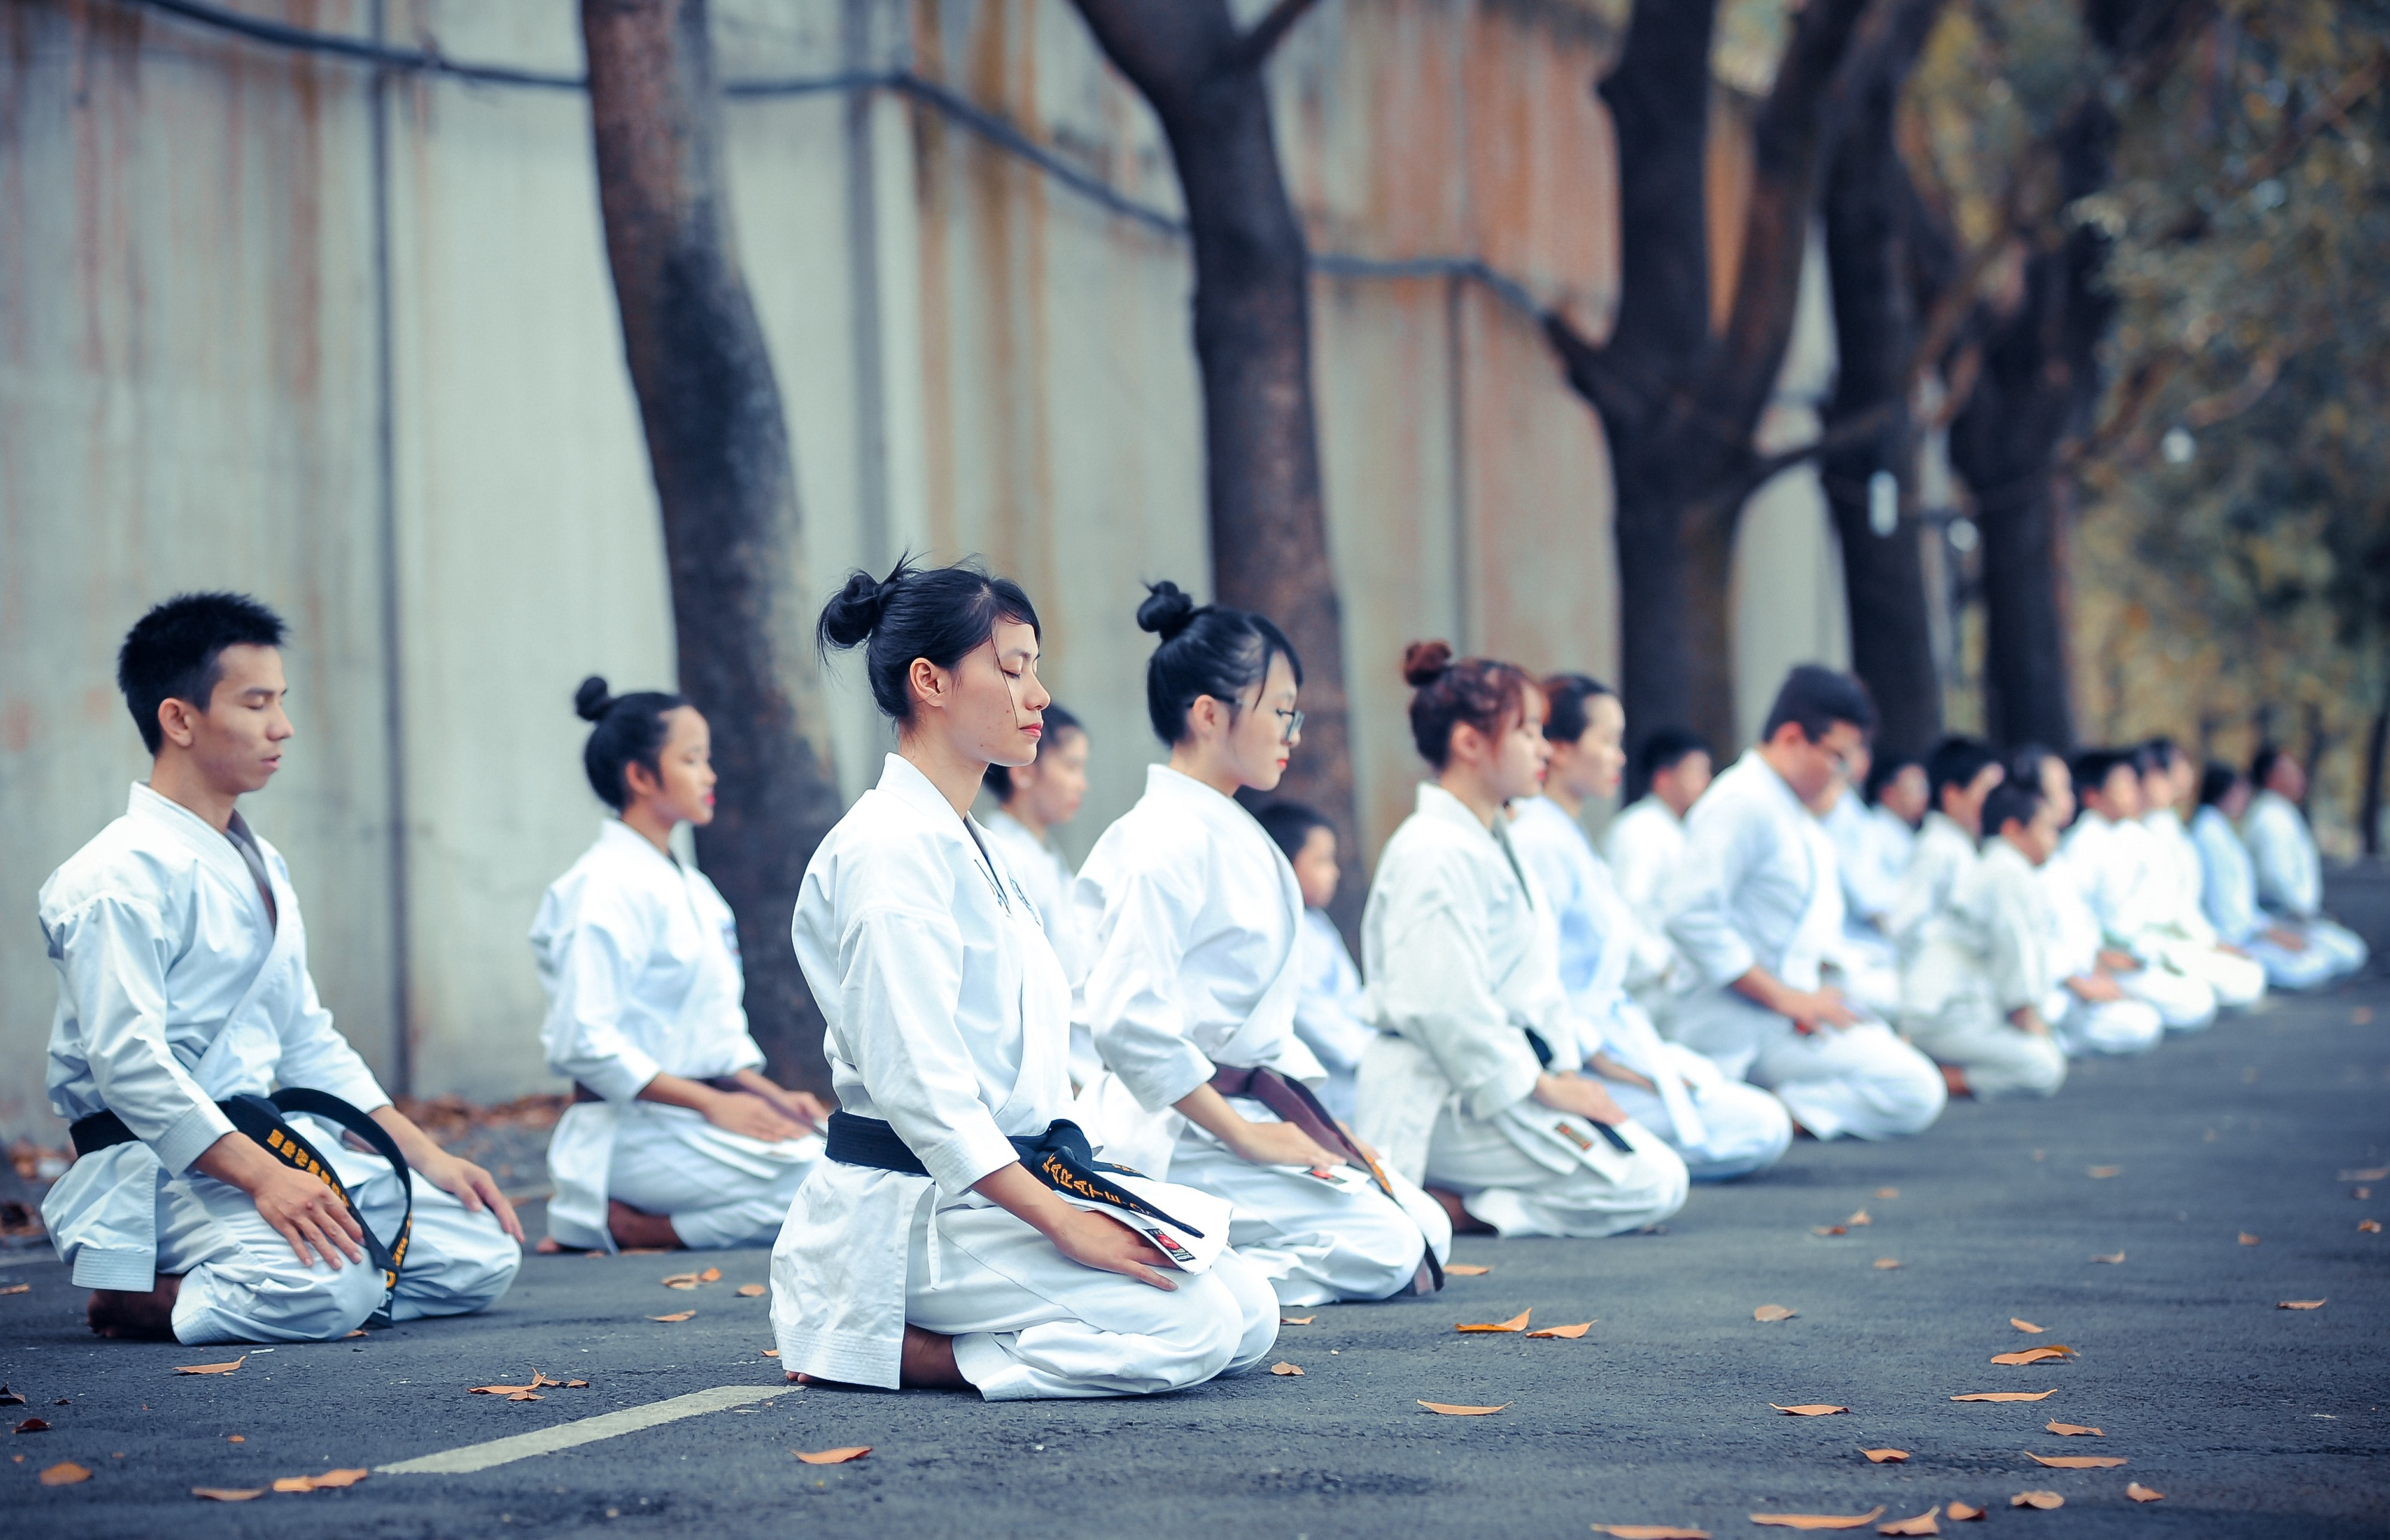 Young Karate students sitting on the street and meditating